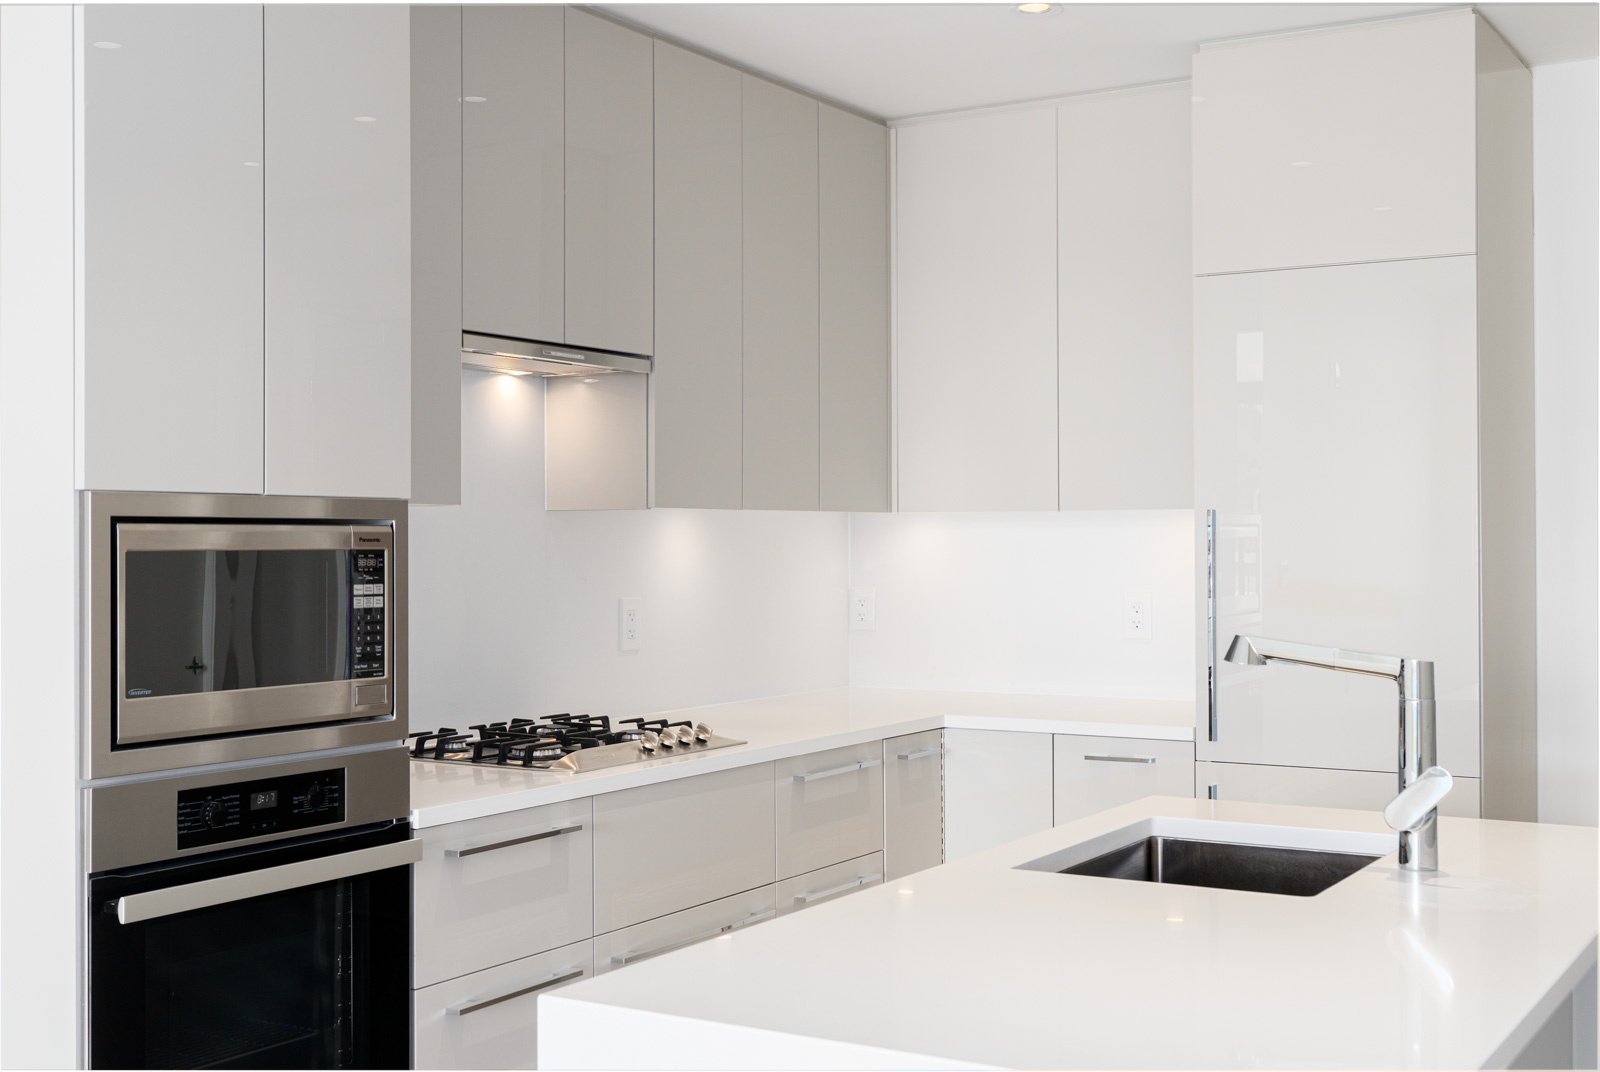 Kitchen with high-end appliances managed by Birds Nest Properties